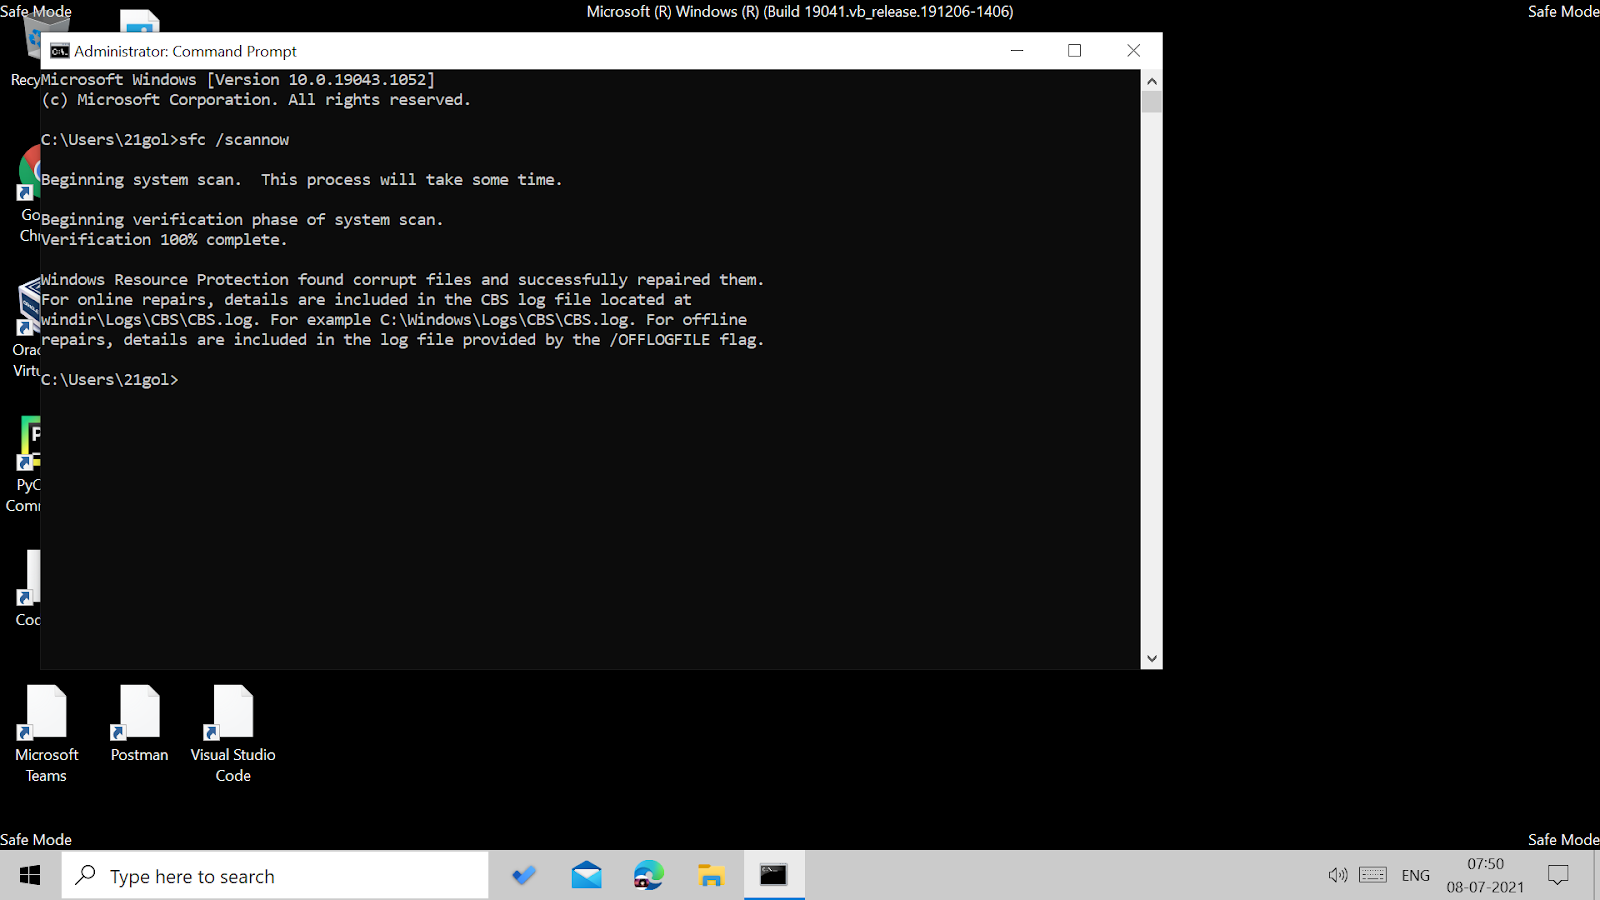 Running SFC scan in the command prompt